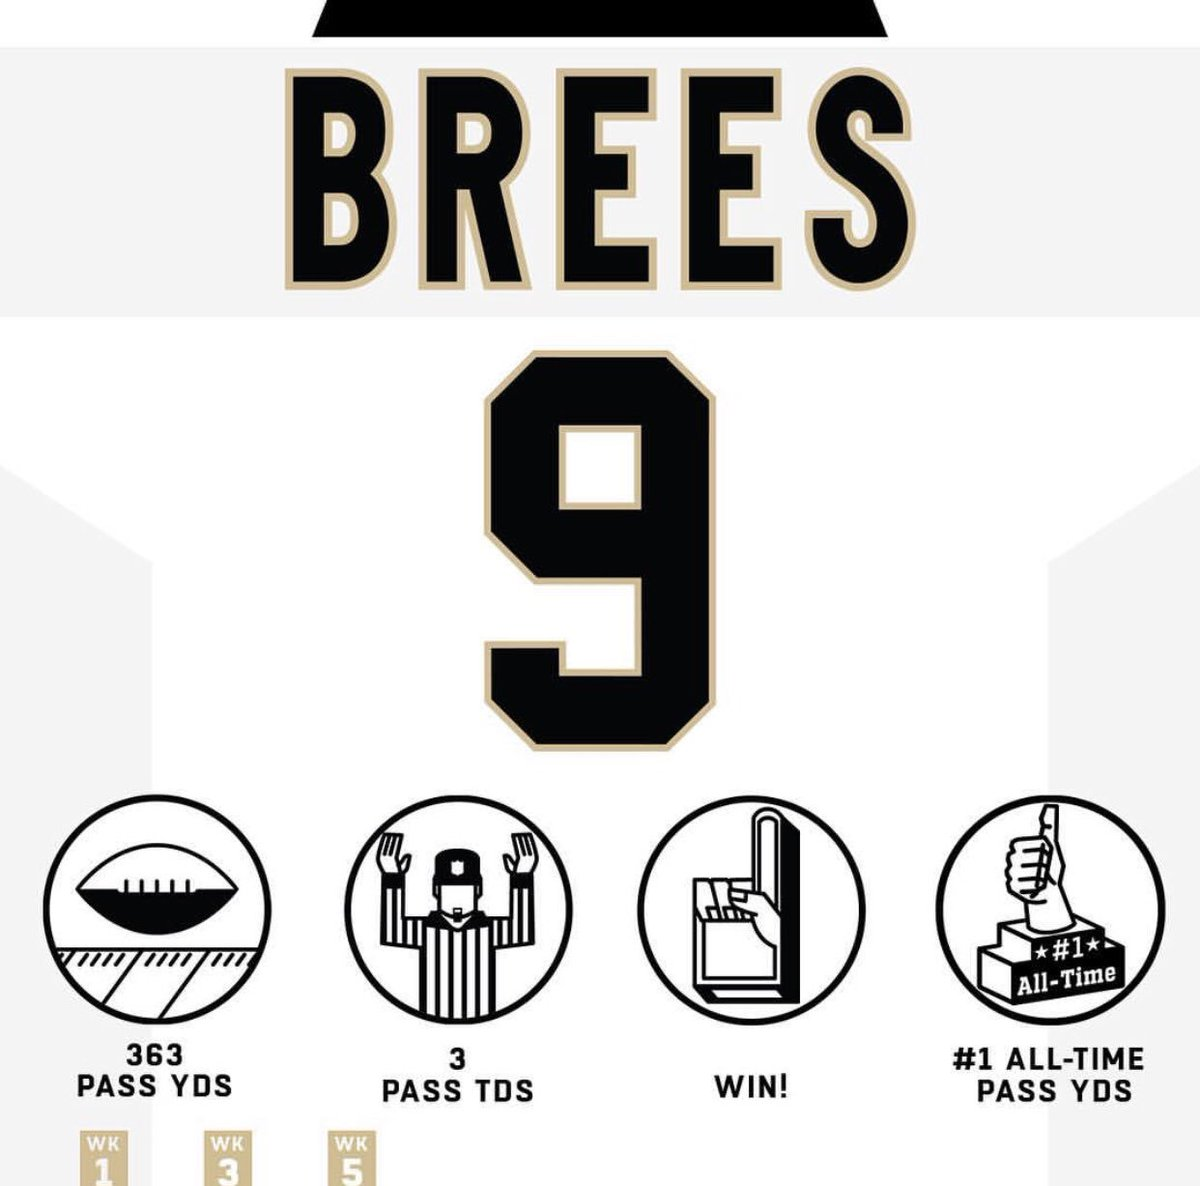 Congratulations to @drewbrees on becoming the NFL all-time passing yardage leader. Youngsters, with hard work you can accomplish anything you aspire. Next milestone, 500 TD passes! LFG! https://t.co/zV1QVekmZs